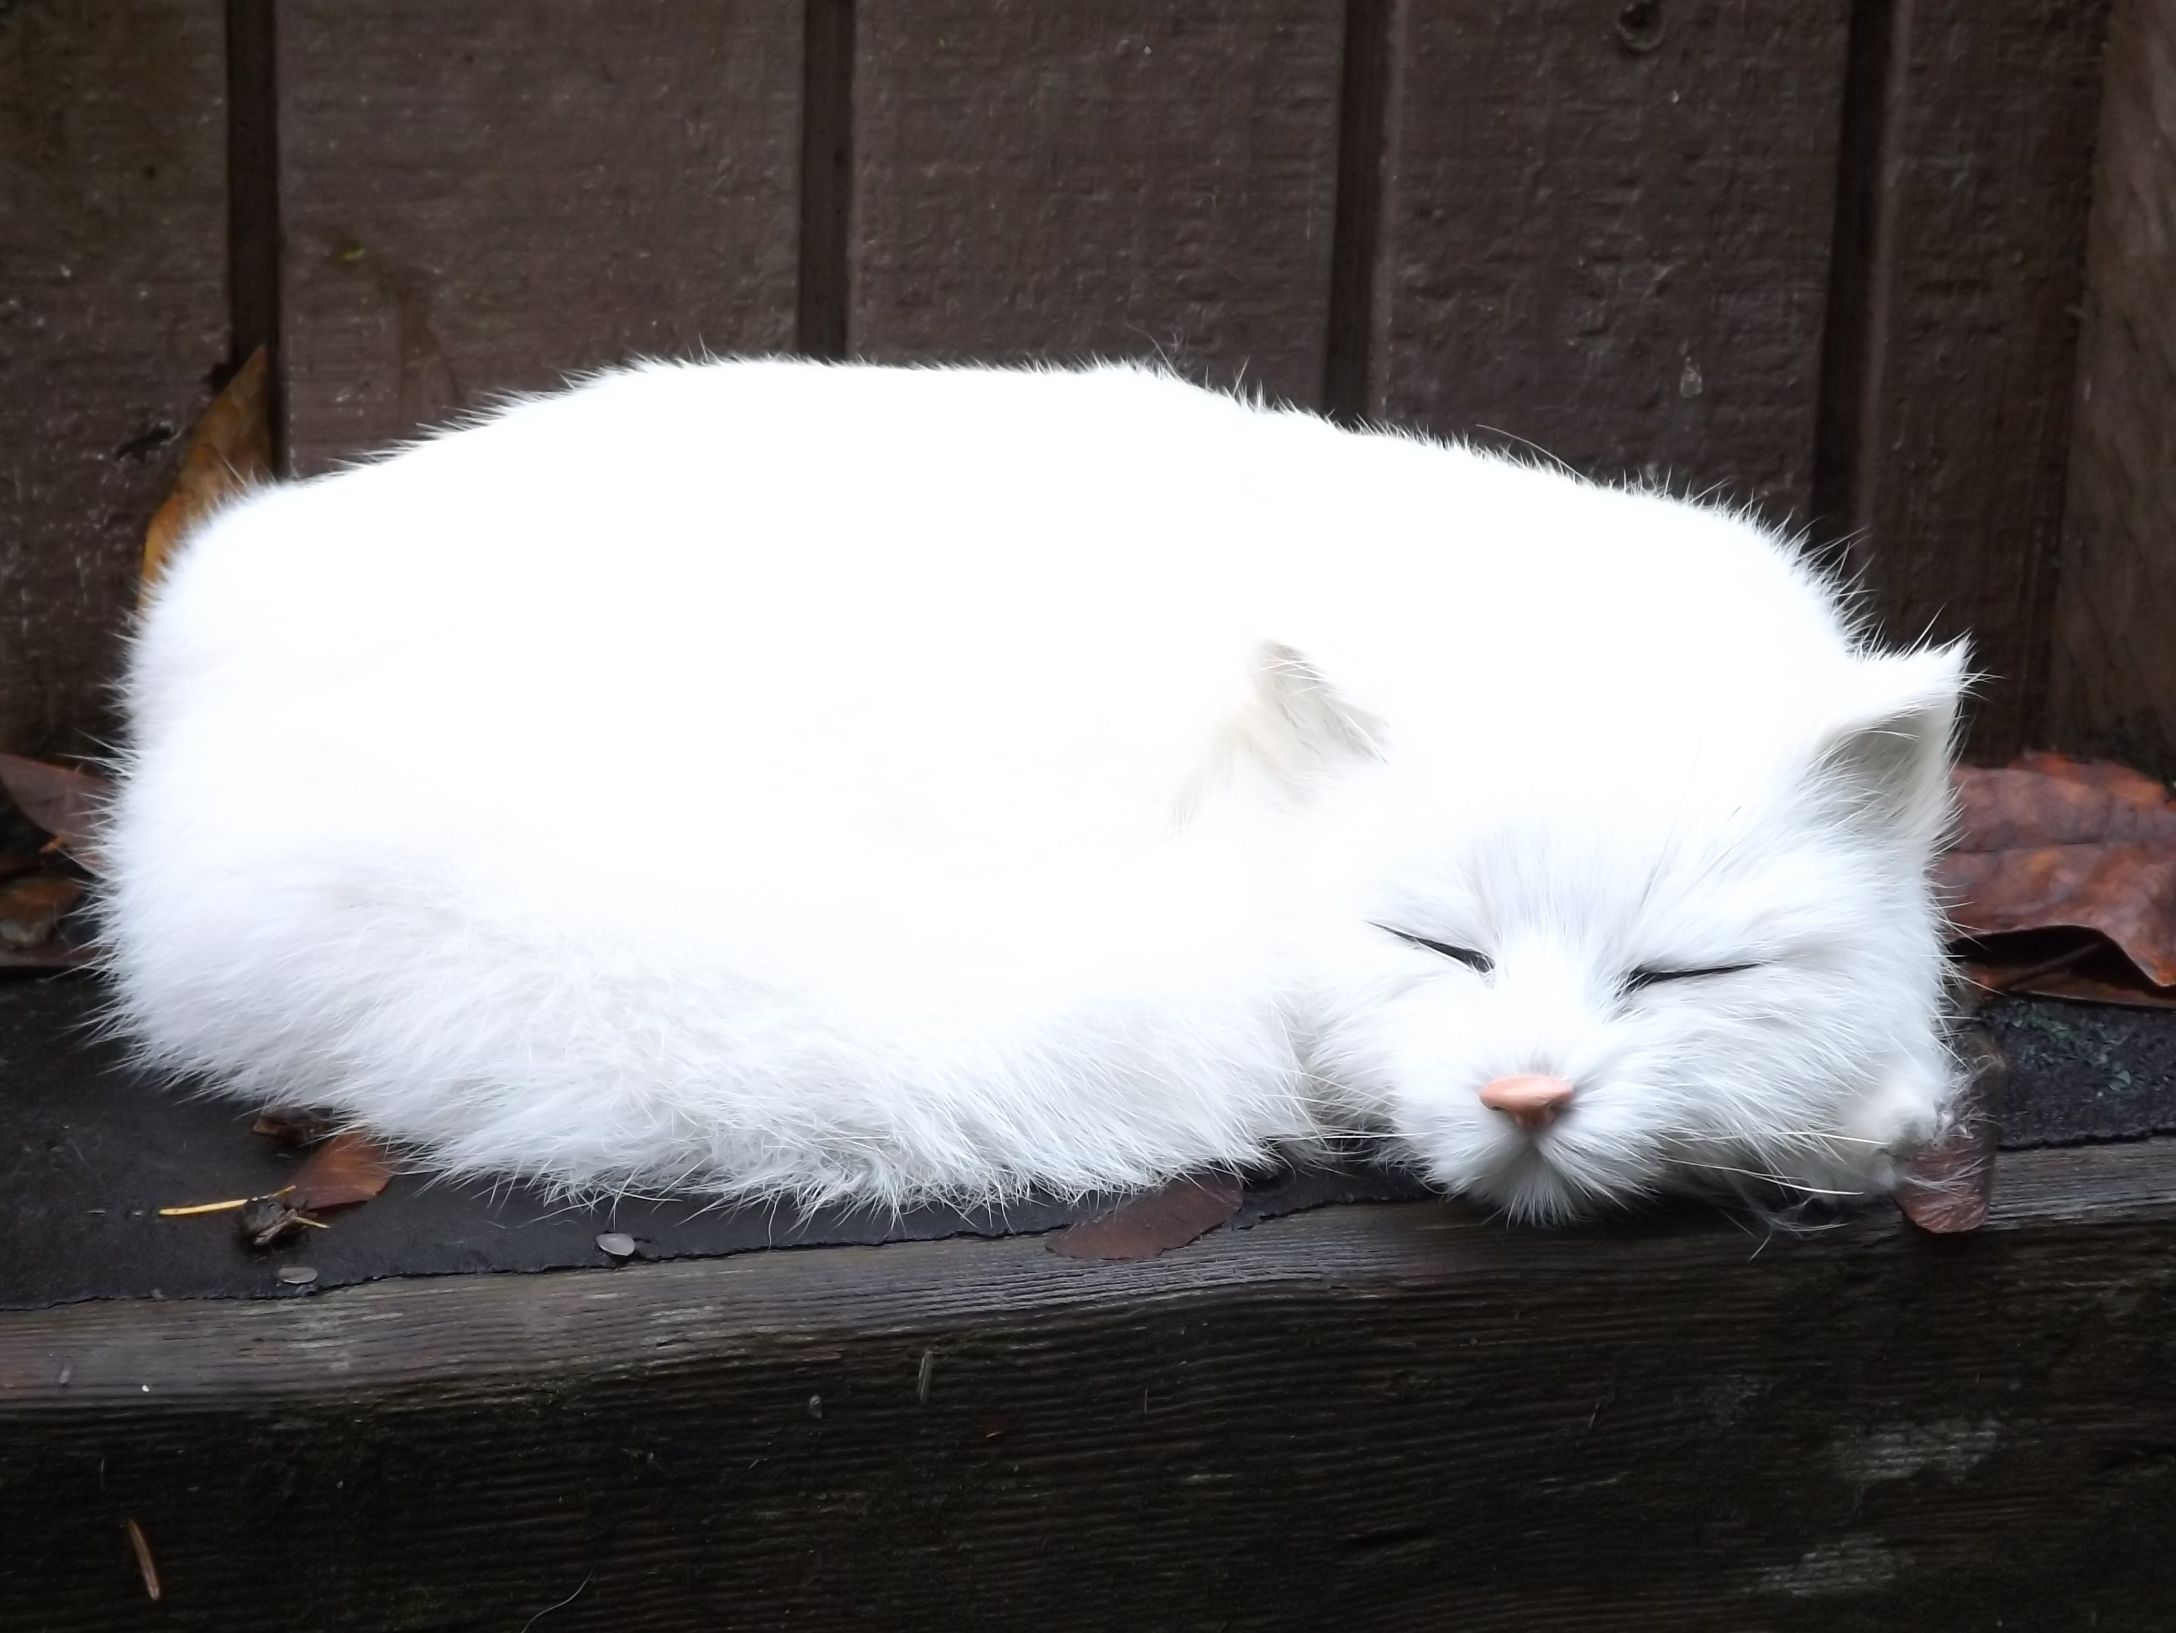 Life Like White Cat – Sleeping Realistic White Cat with Real Fur